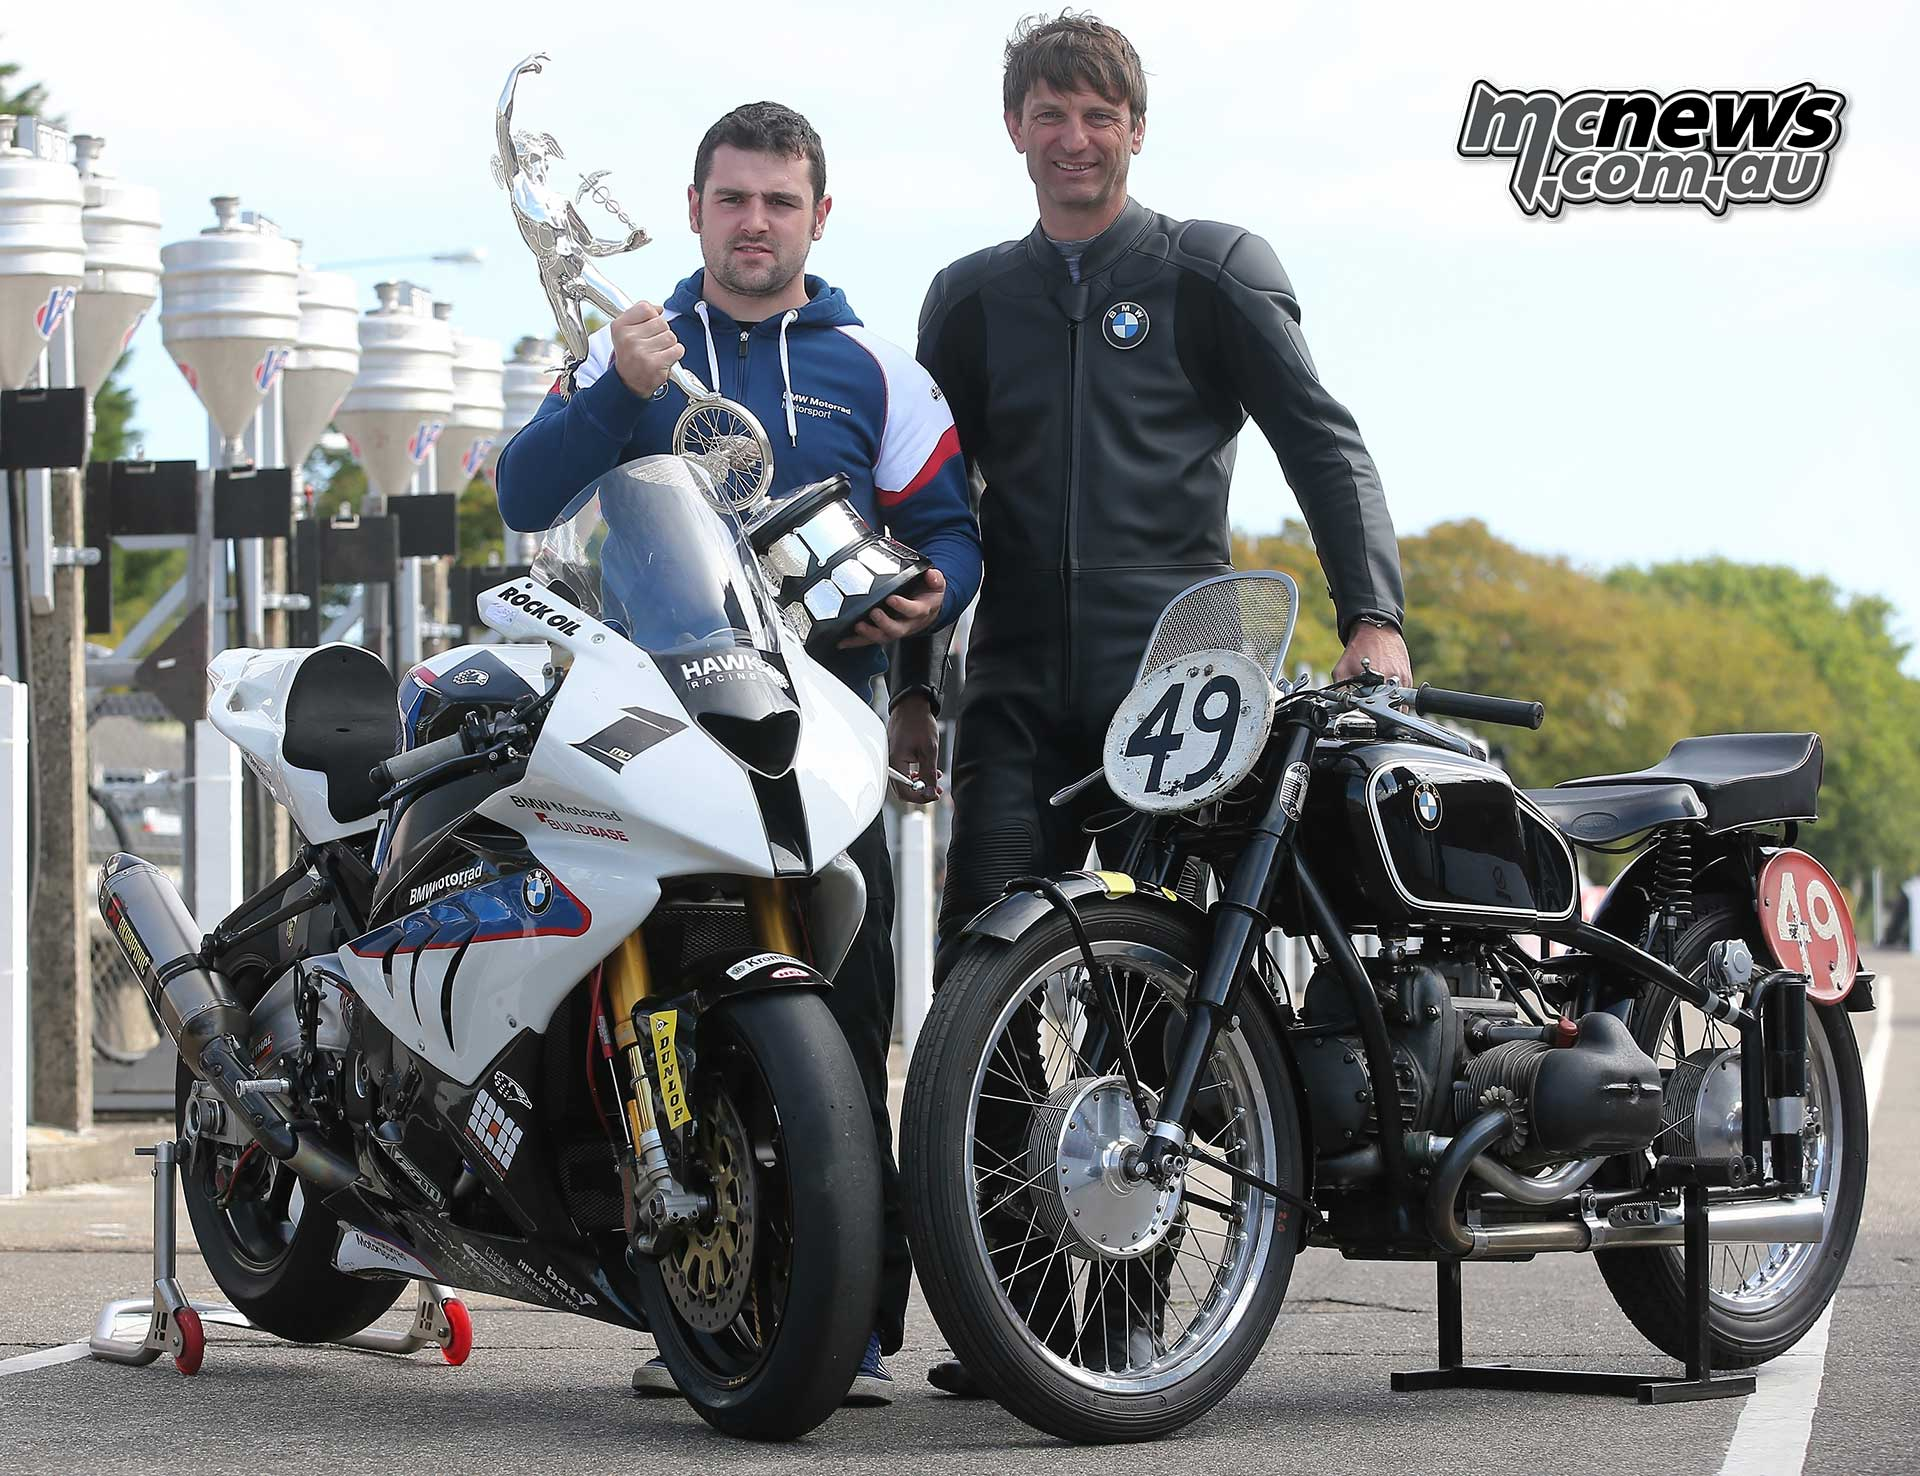 BMW Group Classic at Classic TT 2014, Wolfgang Meier with Kompressor BMW 255 (1939), Michael Dunlop with BMW S 1000 RR (2014)